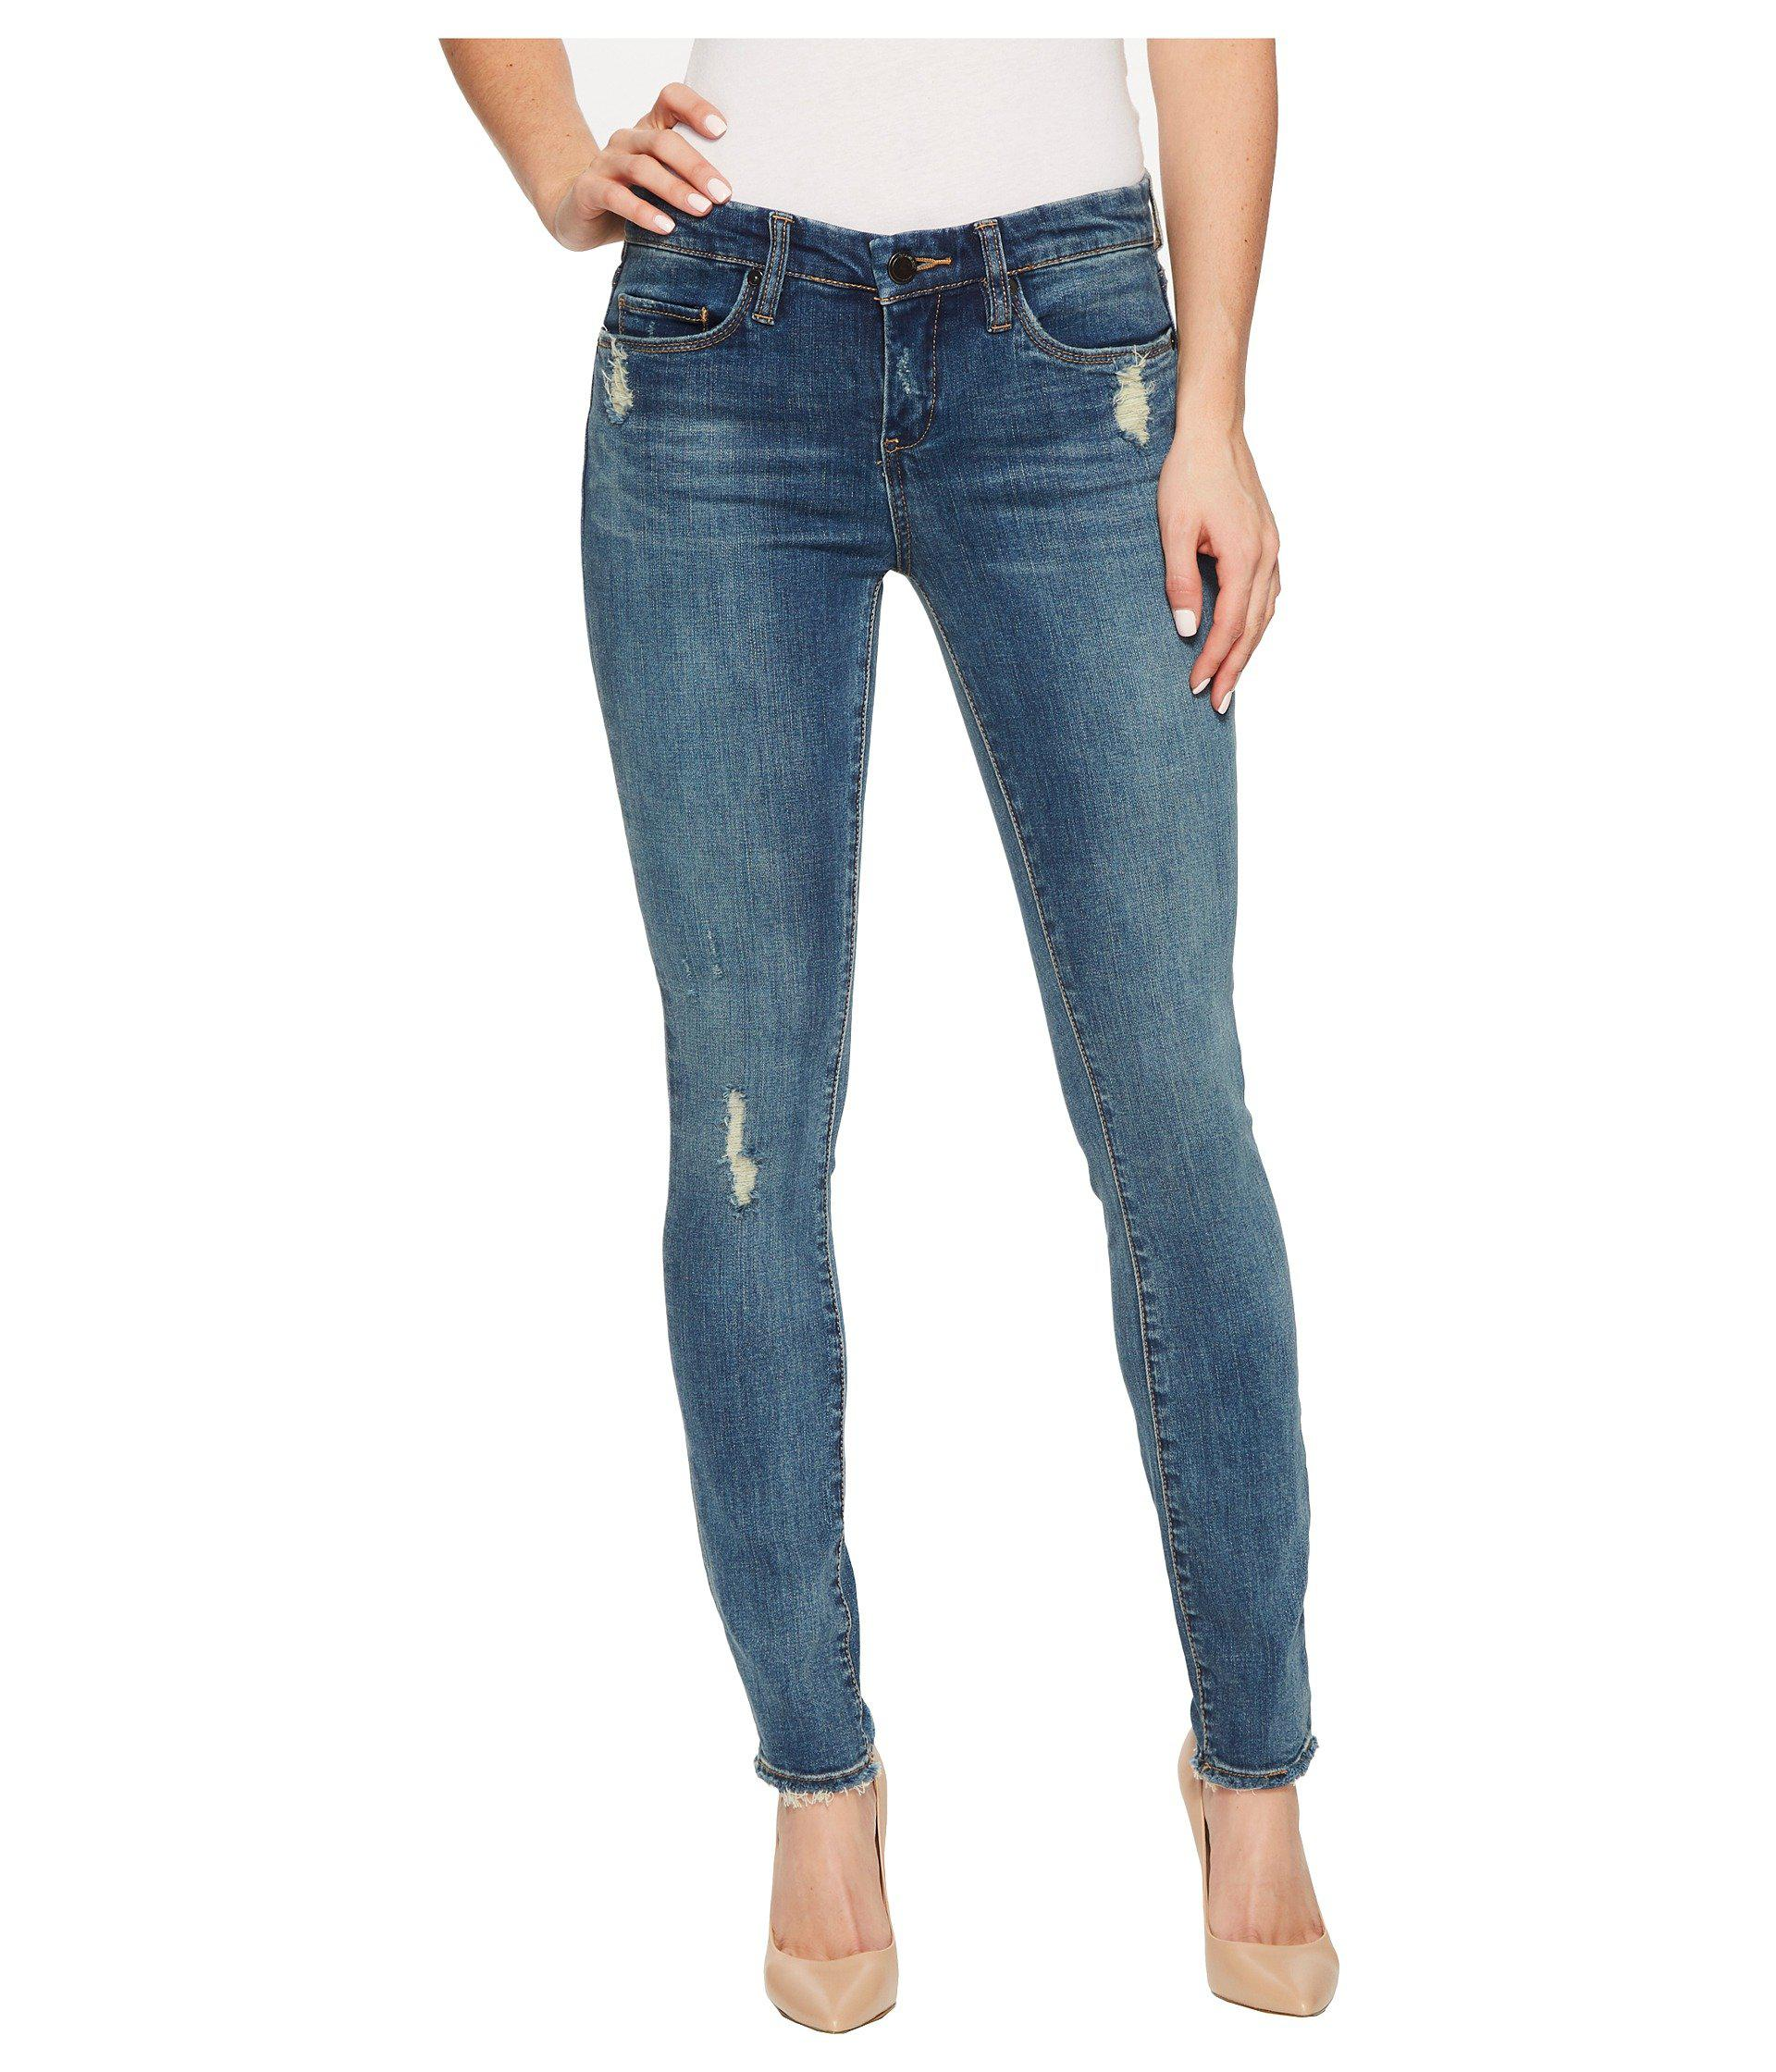 Buy Cheap Fashion Style Low Price Fee Shipping Online Womens Skinny Classique Embellished Jeans Blank NYC Store With Big Discount Online MHnM6DB